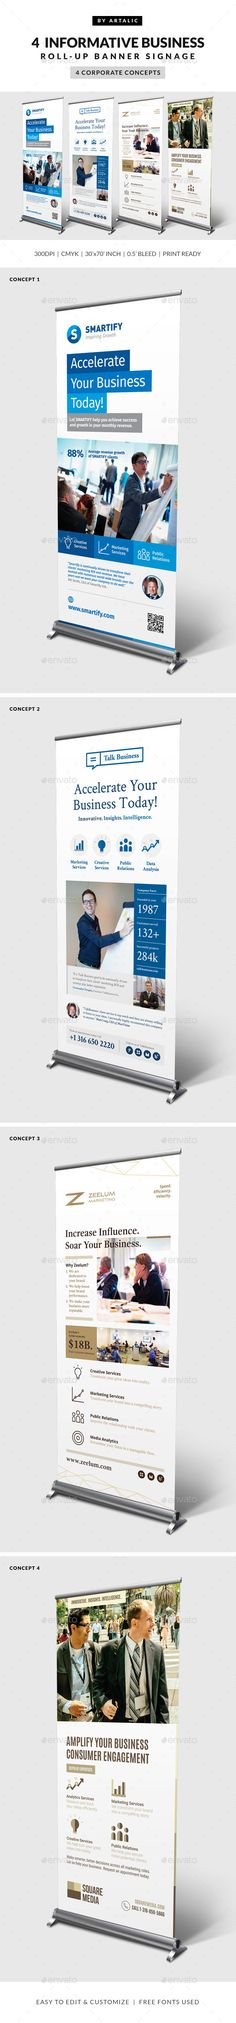 4 Corporate Business Roll-up Banners Template #design Download: http://graphicriver.net/item/4-corporate-business-rollup-banners/10841256?ref=ksioks